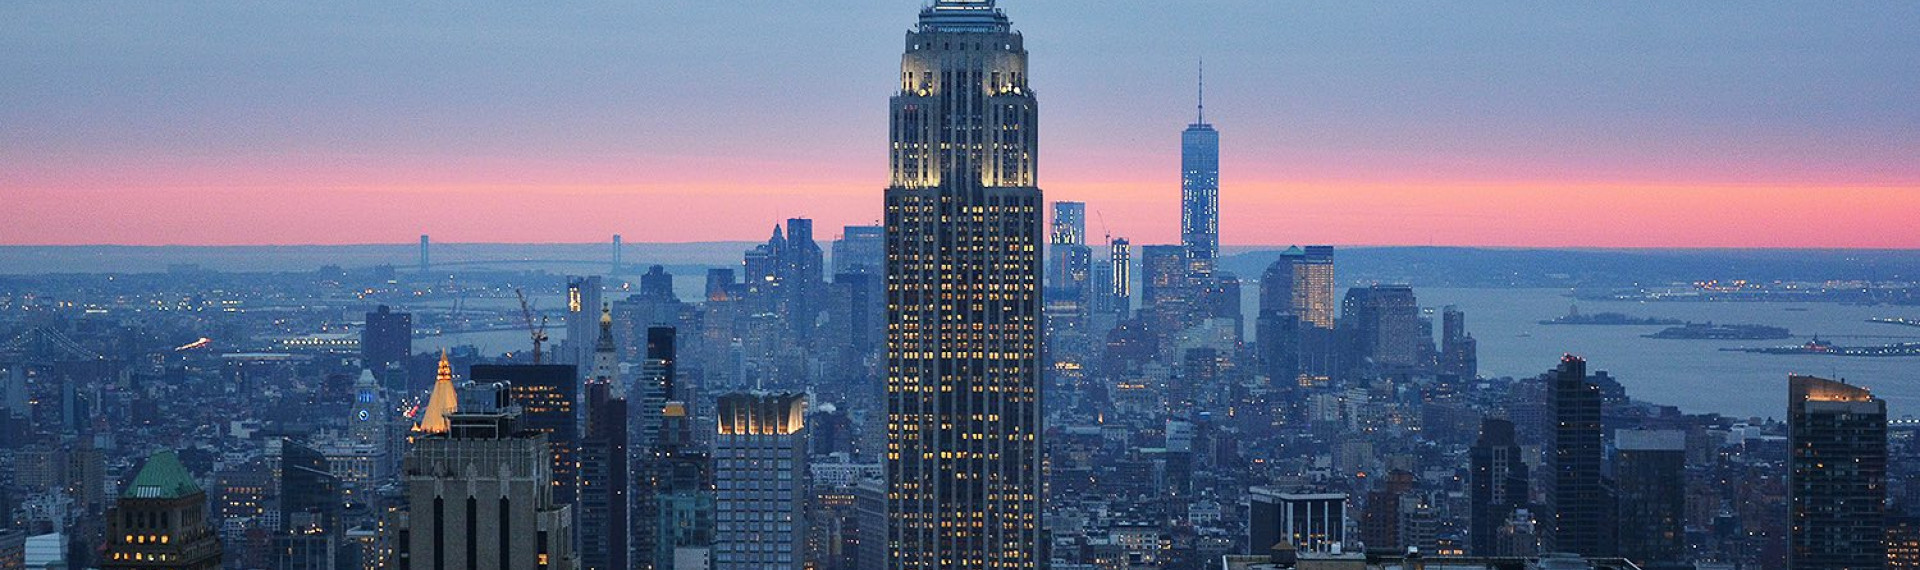 the tall empire state building surrounded by other buildings with a light blue and pink sky in the distance